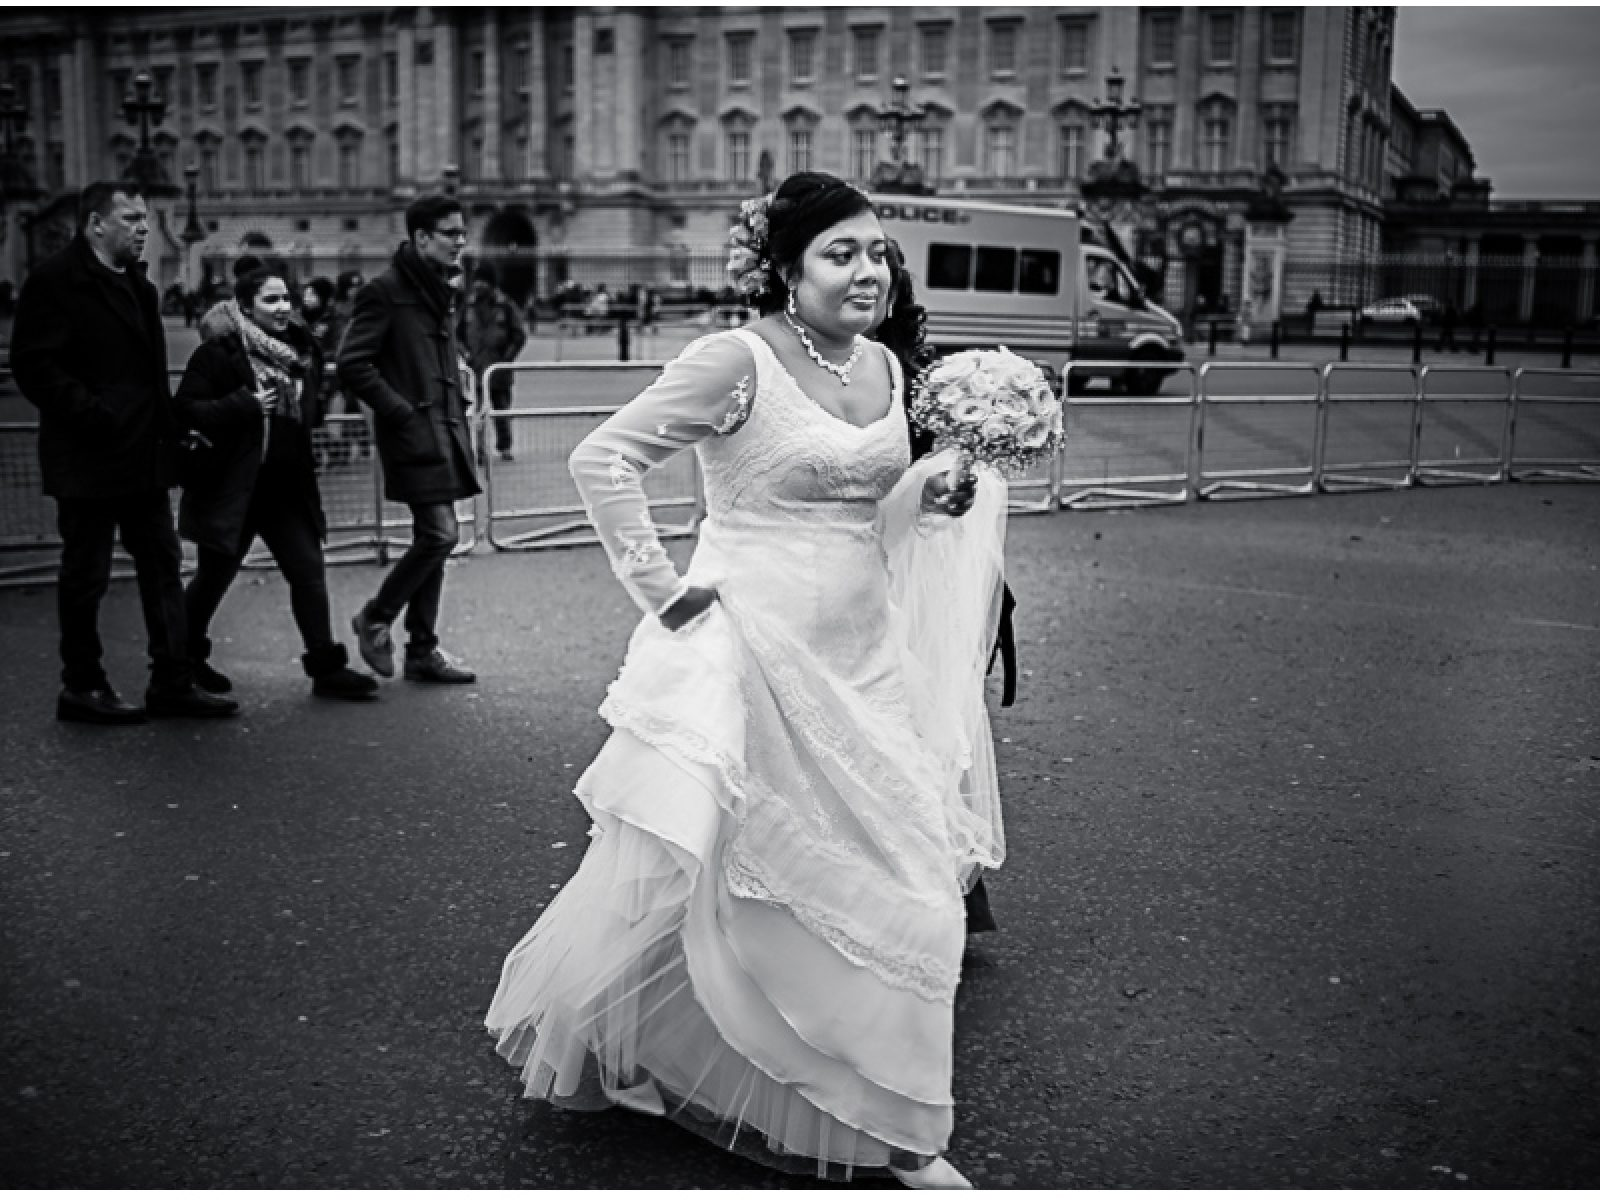 331 1600x1200 - Darshani and Anthony - wedding photographer in London